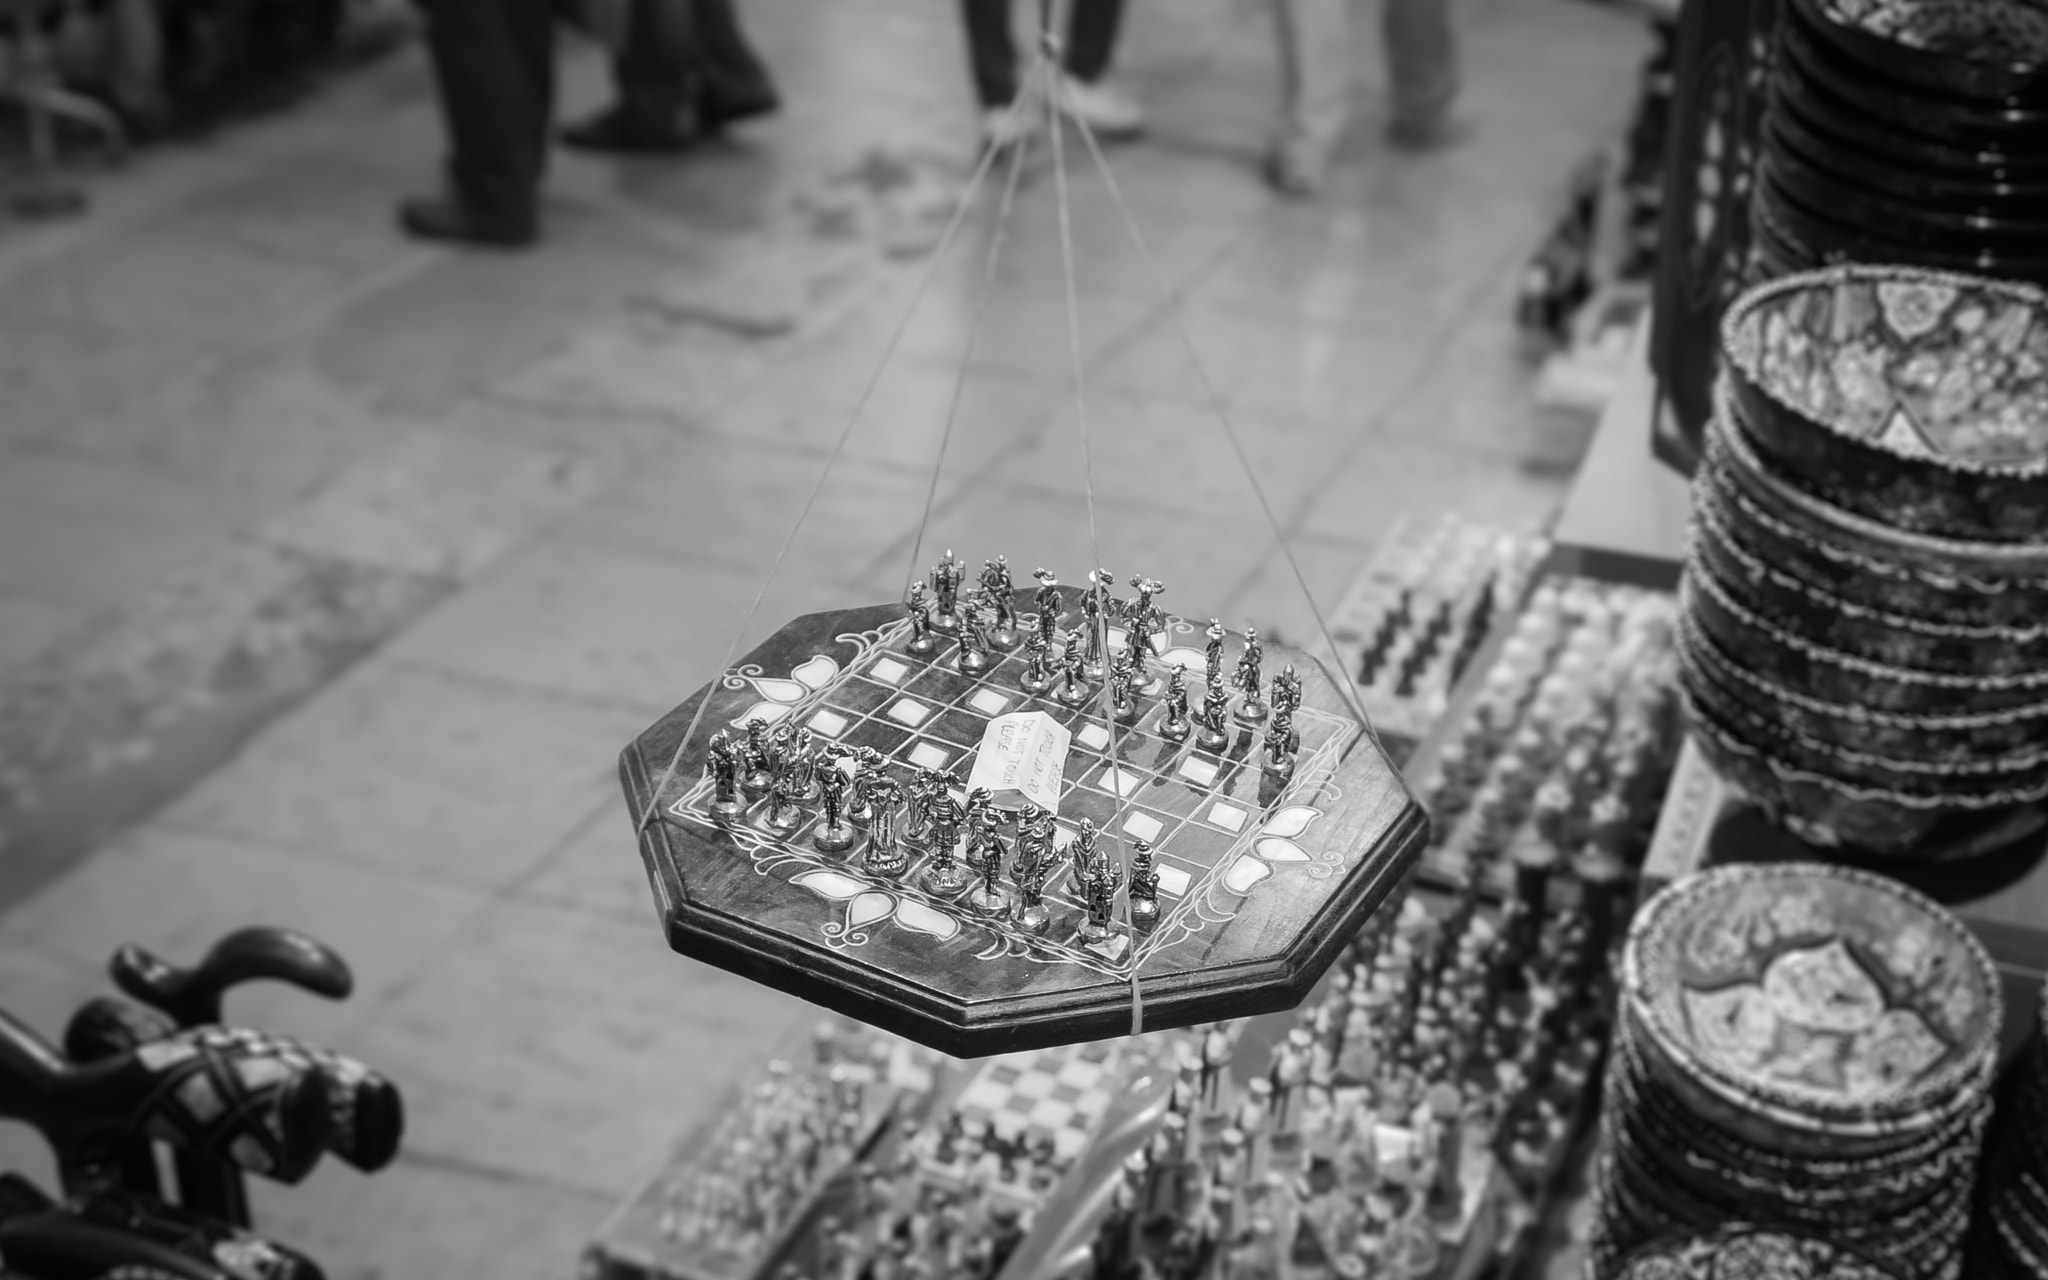 Photograph Chess Game by Donald Campbell on 500px